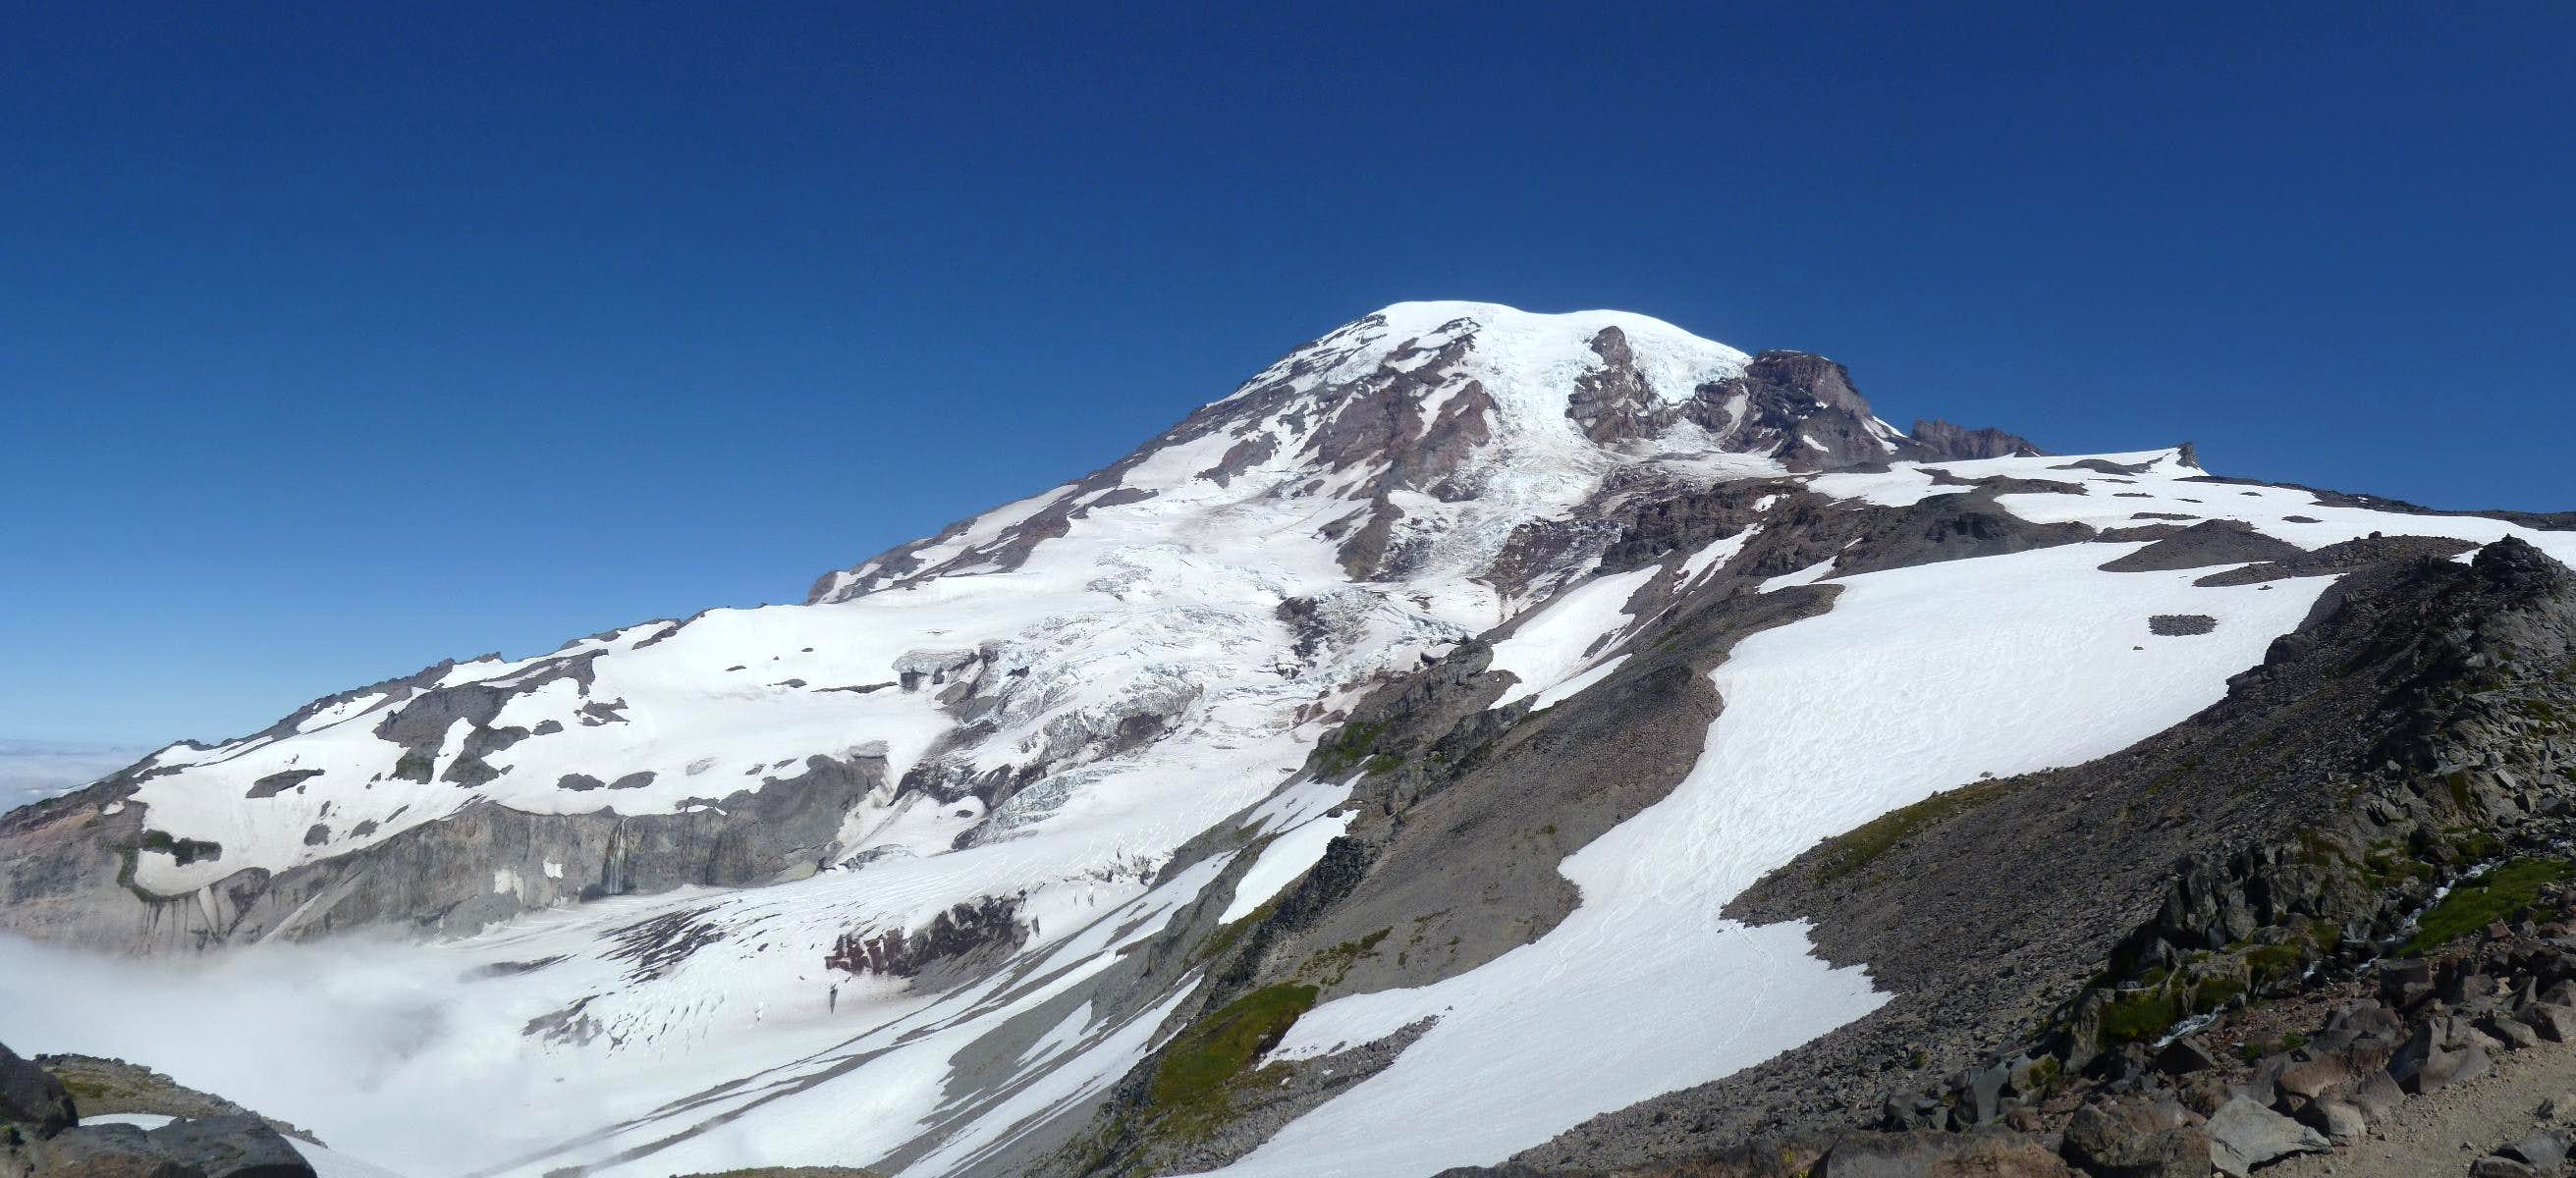 Climbing Mount Rainier in less than a day... from sea level